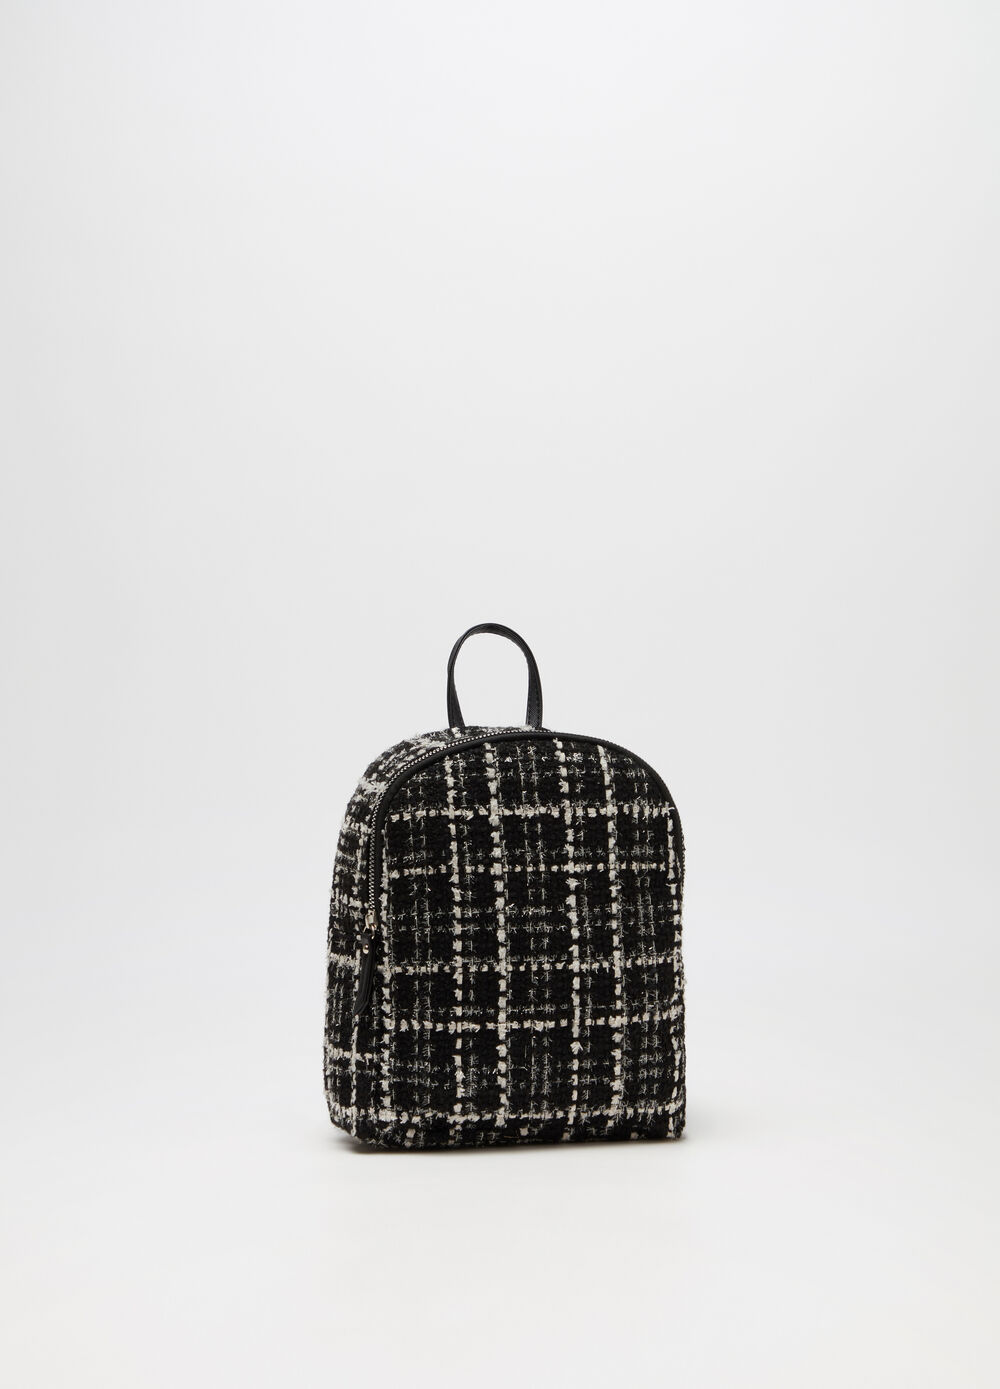 Two-tone tweed backpack